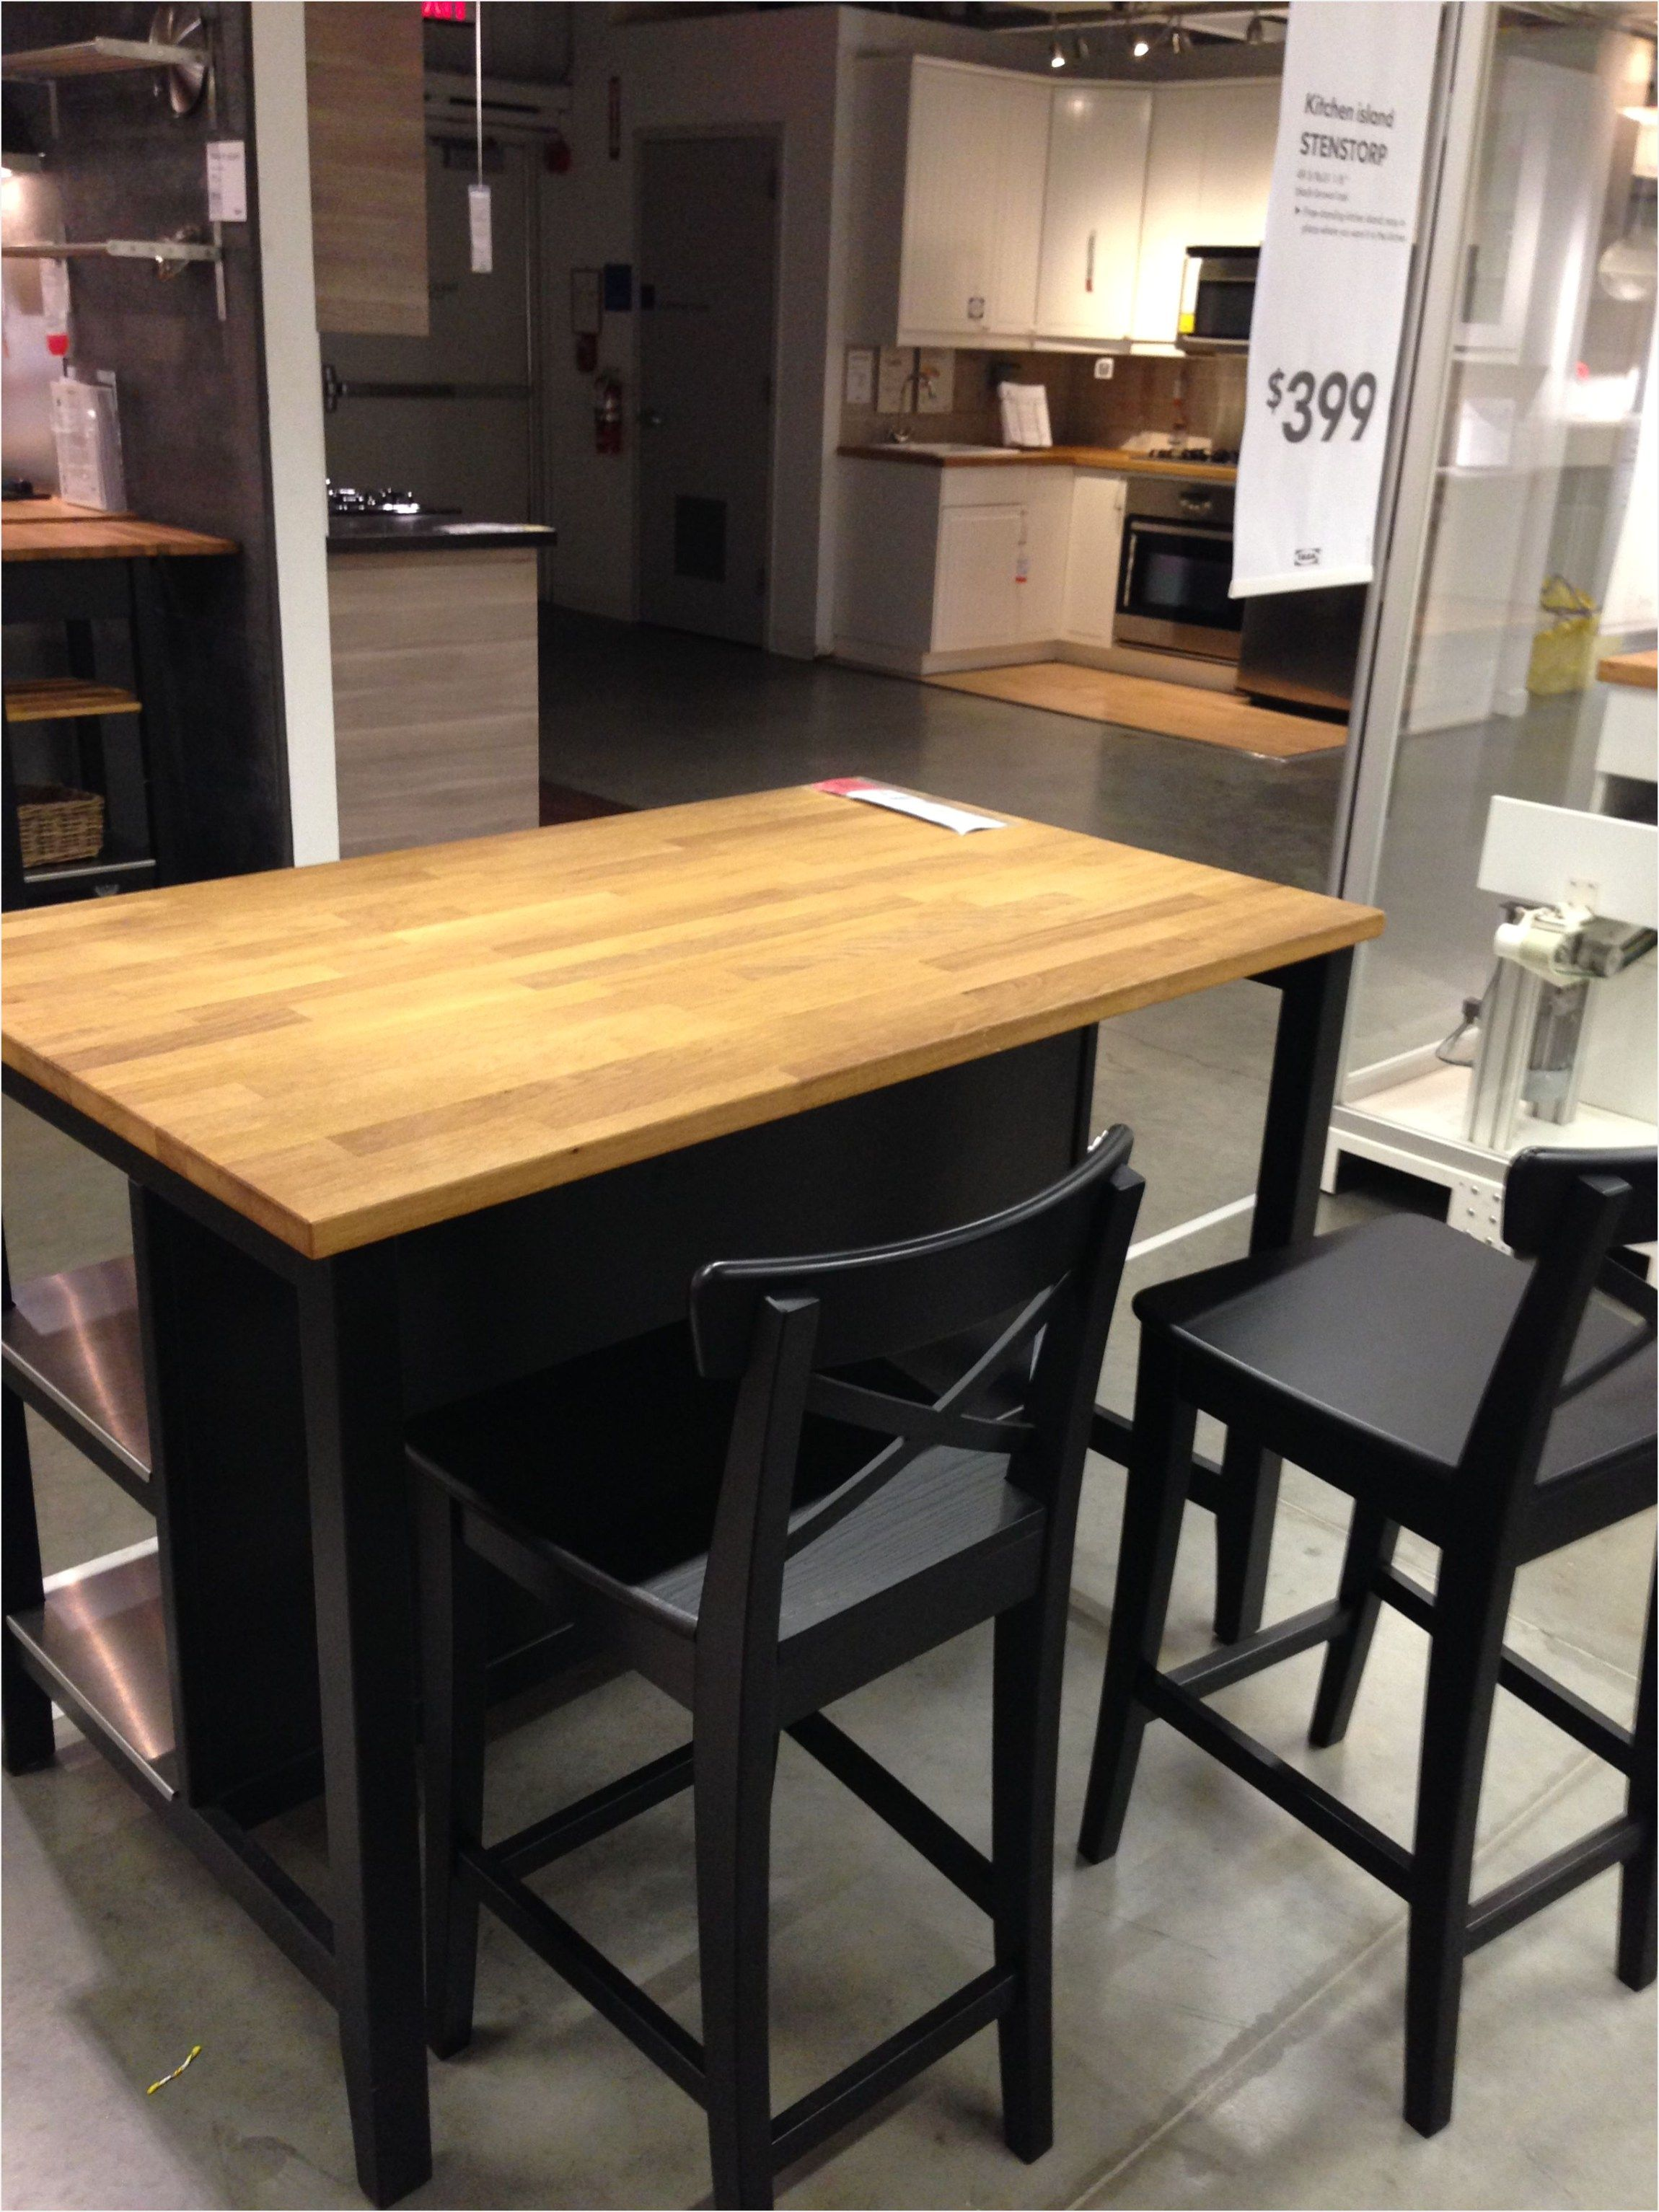 42 Inexpensive Ikea Kitchen Islands With Seating Ideas Comedecor Ikea Kitchen Island Portable Kitchen Island Ikea Kitchen